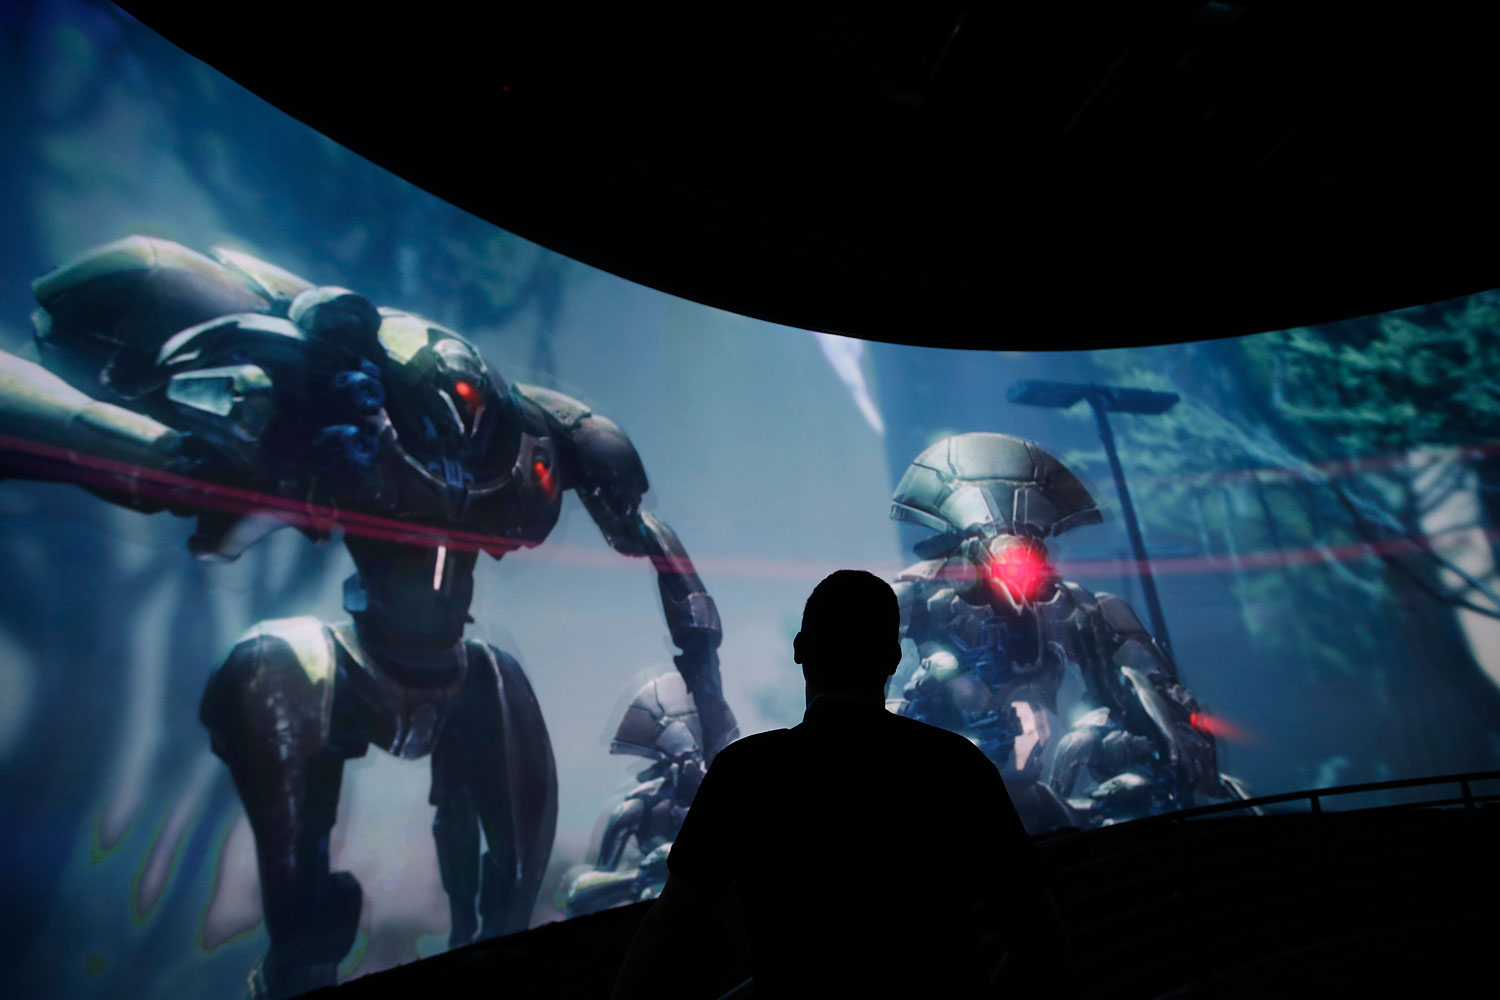 FILE - In this June 13, 2013 file photo, Alex Beckers watches a presentation on the video game  Destiny  at the Activision Blizzard Booth during the Electronic Entertainment Expo in Los Angeles, June 13, 2013.